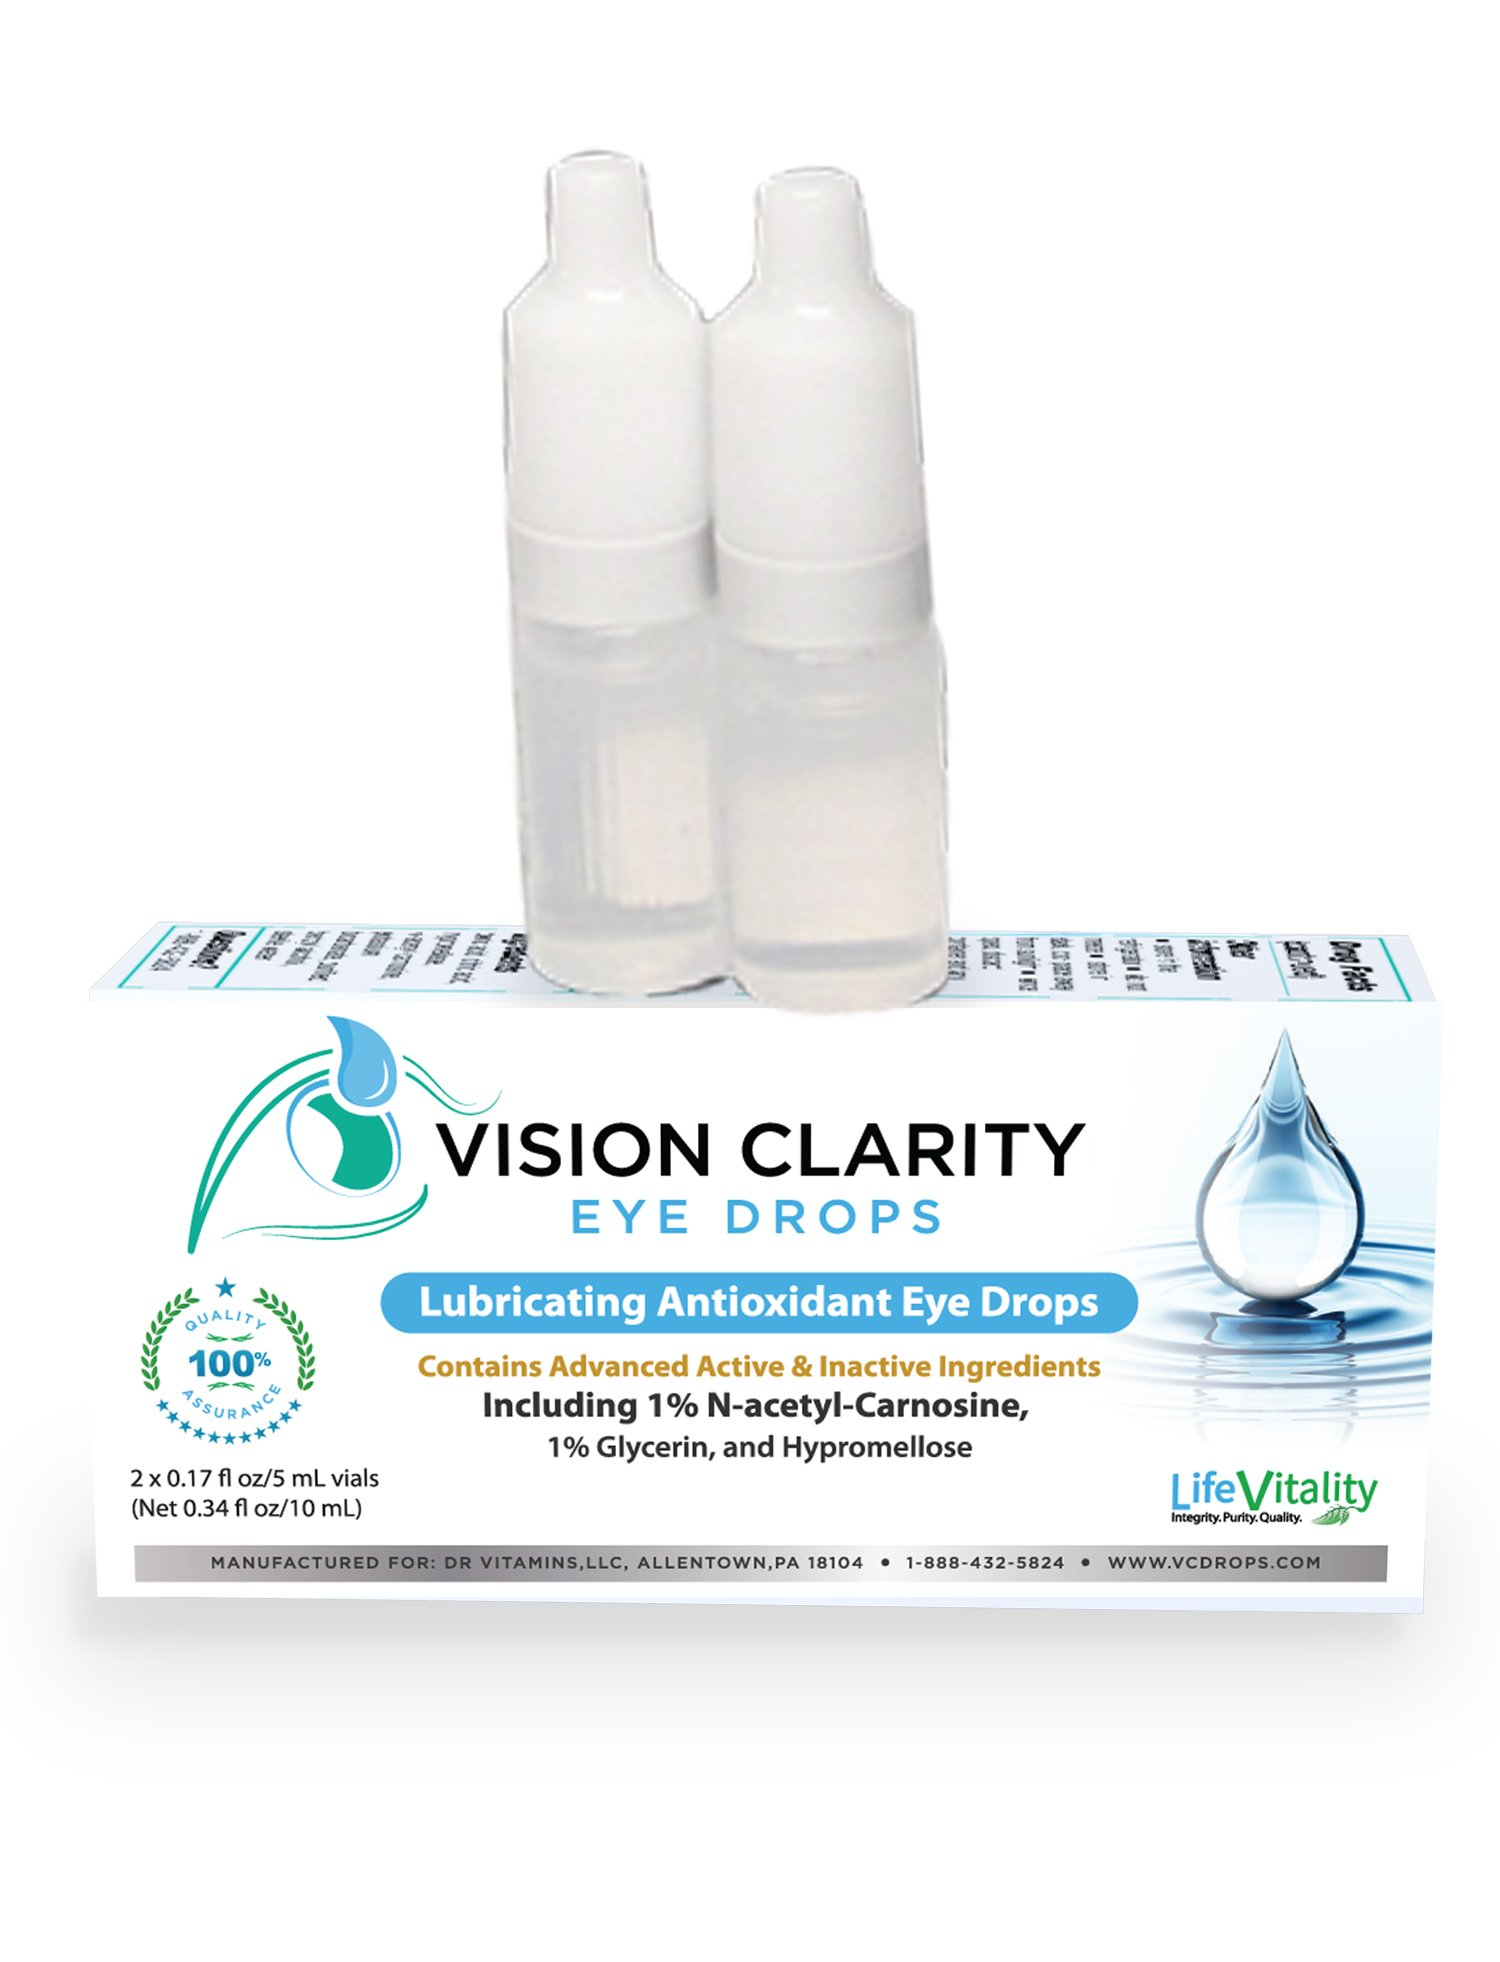 Vision Clarity Eye Drops containing 1% Carnosine (NAC Drops), Lubricants, two 5ml vials, for Dry Eyes and More